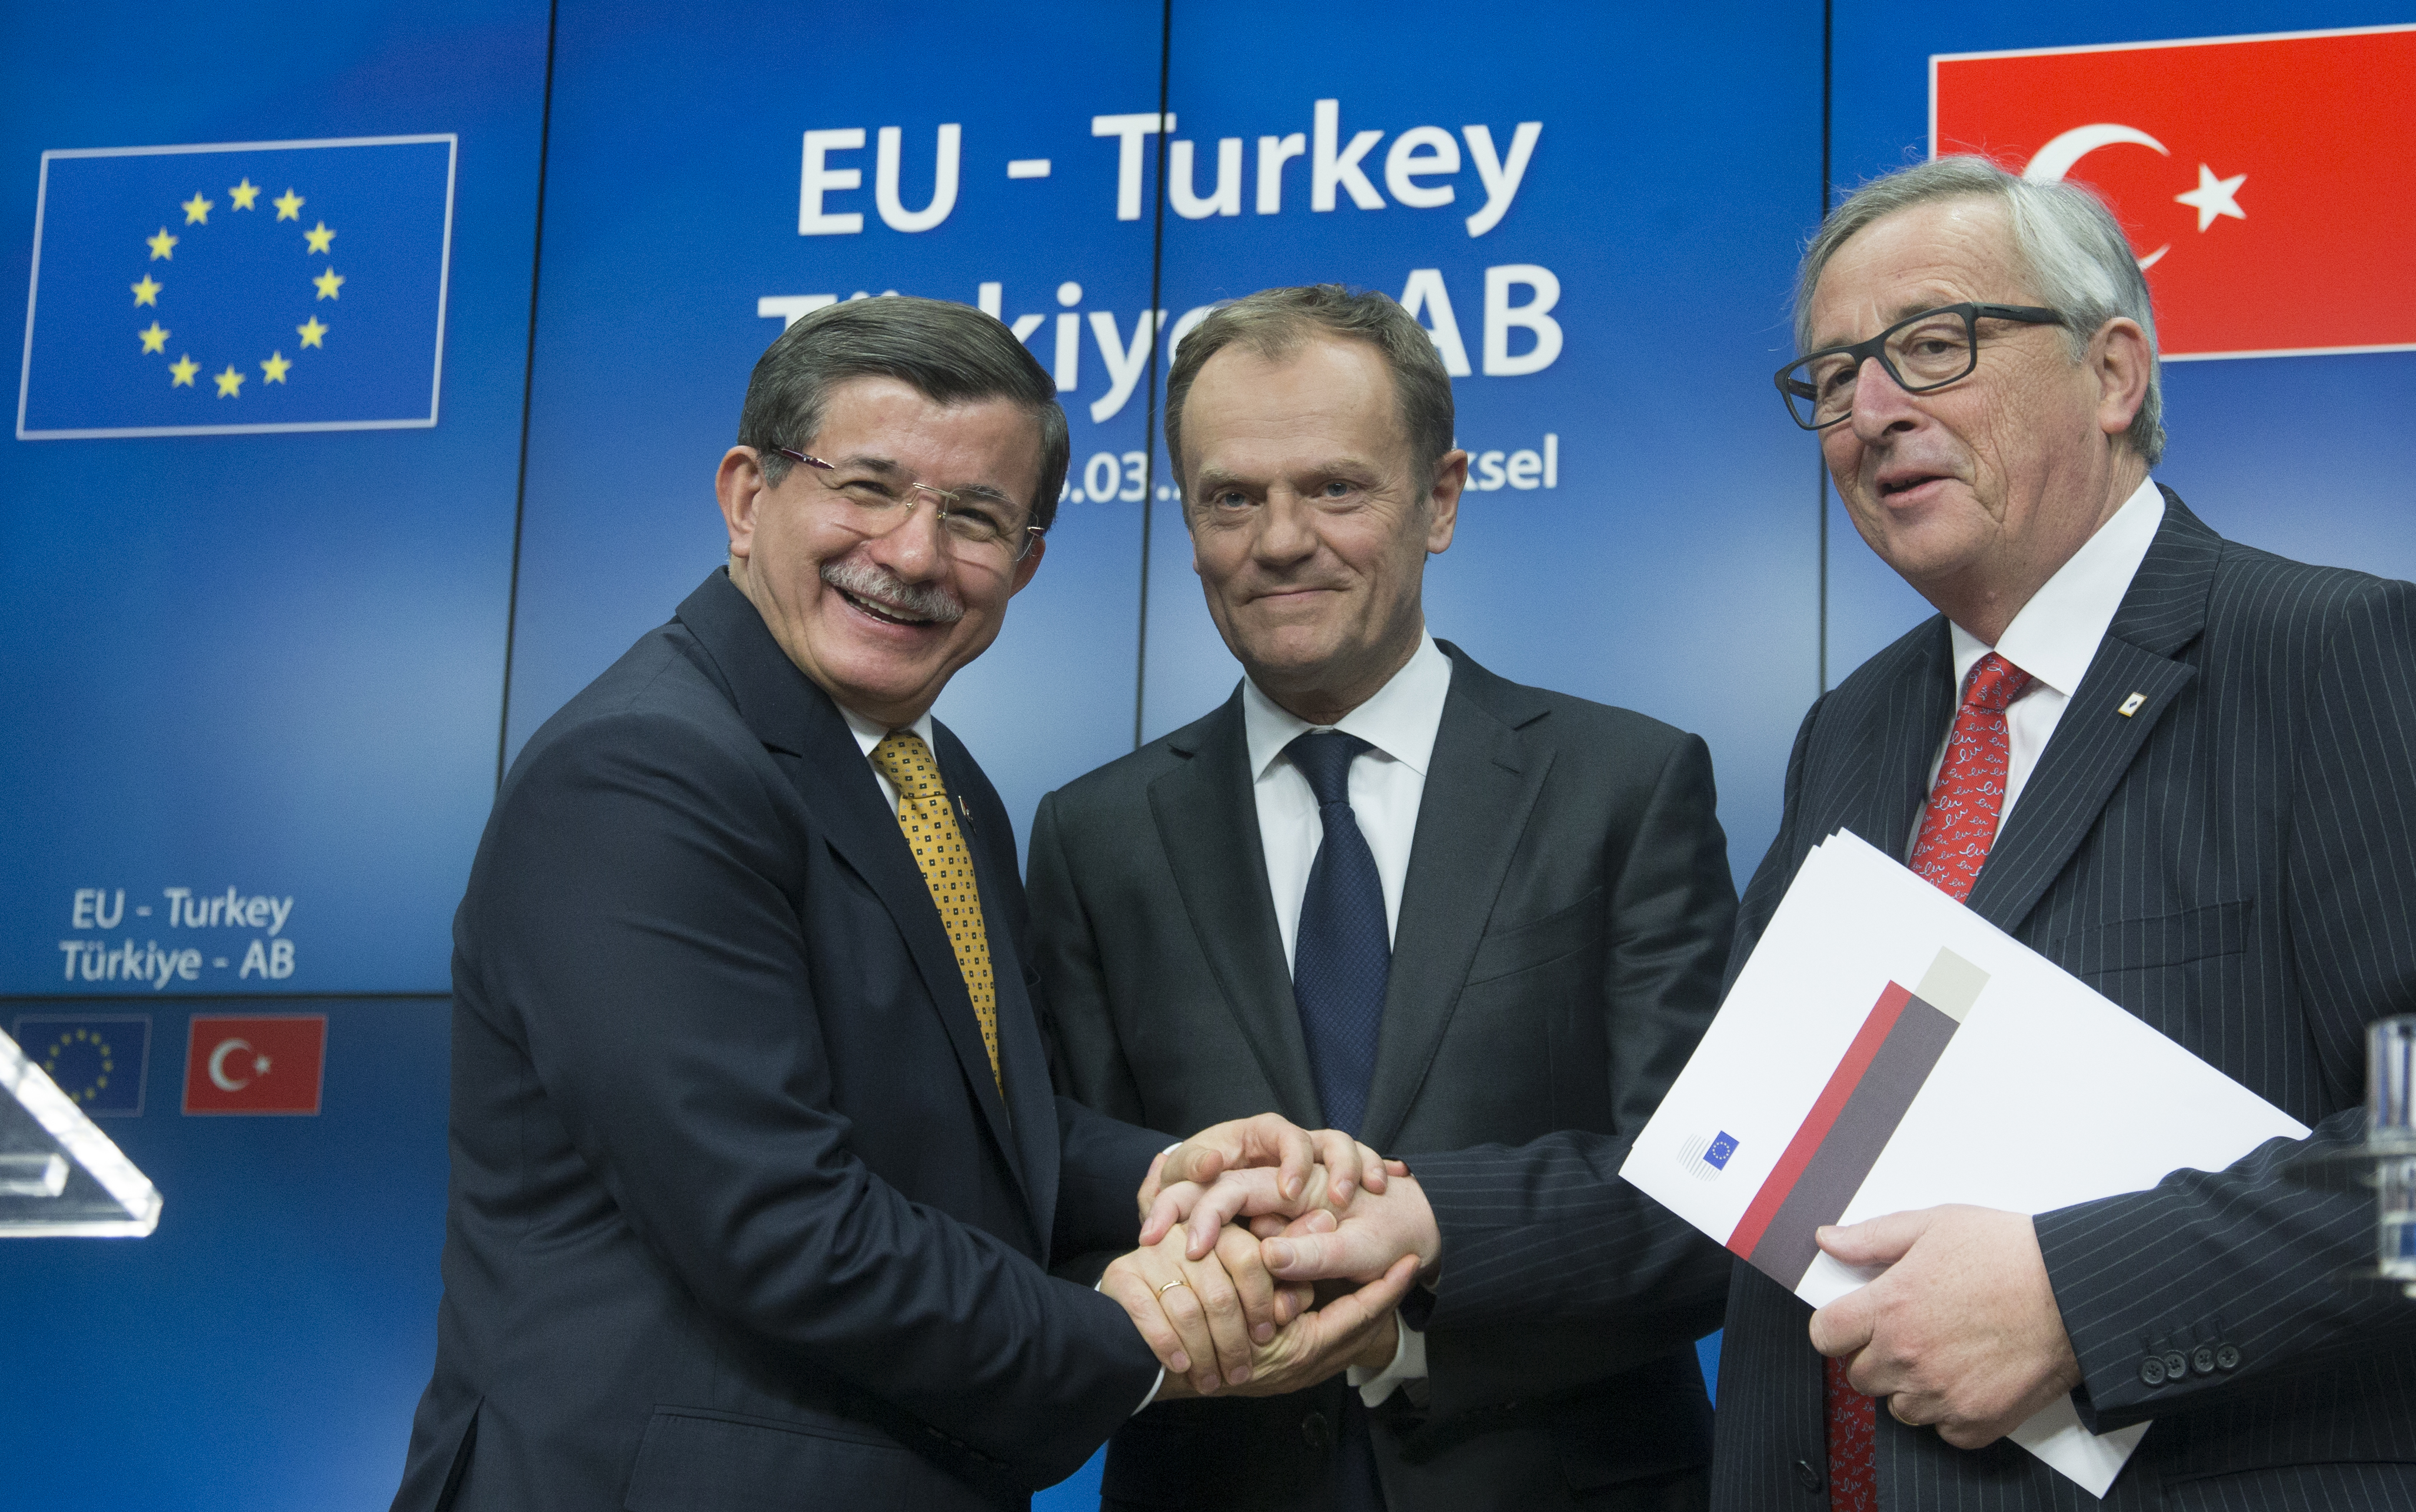 Ankara appears satisfied with the implementation of the Agreement with the EU